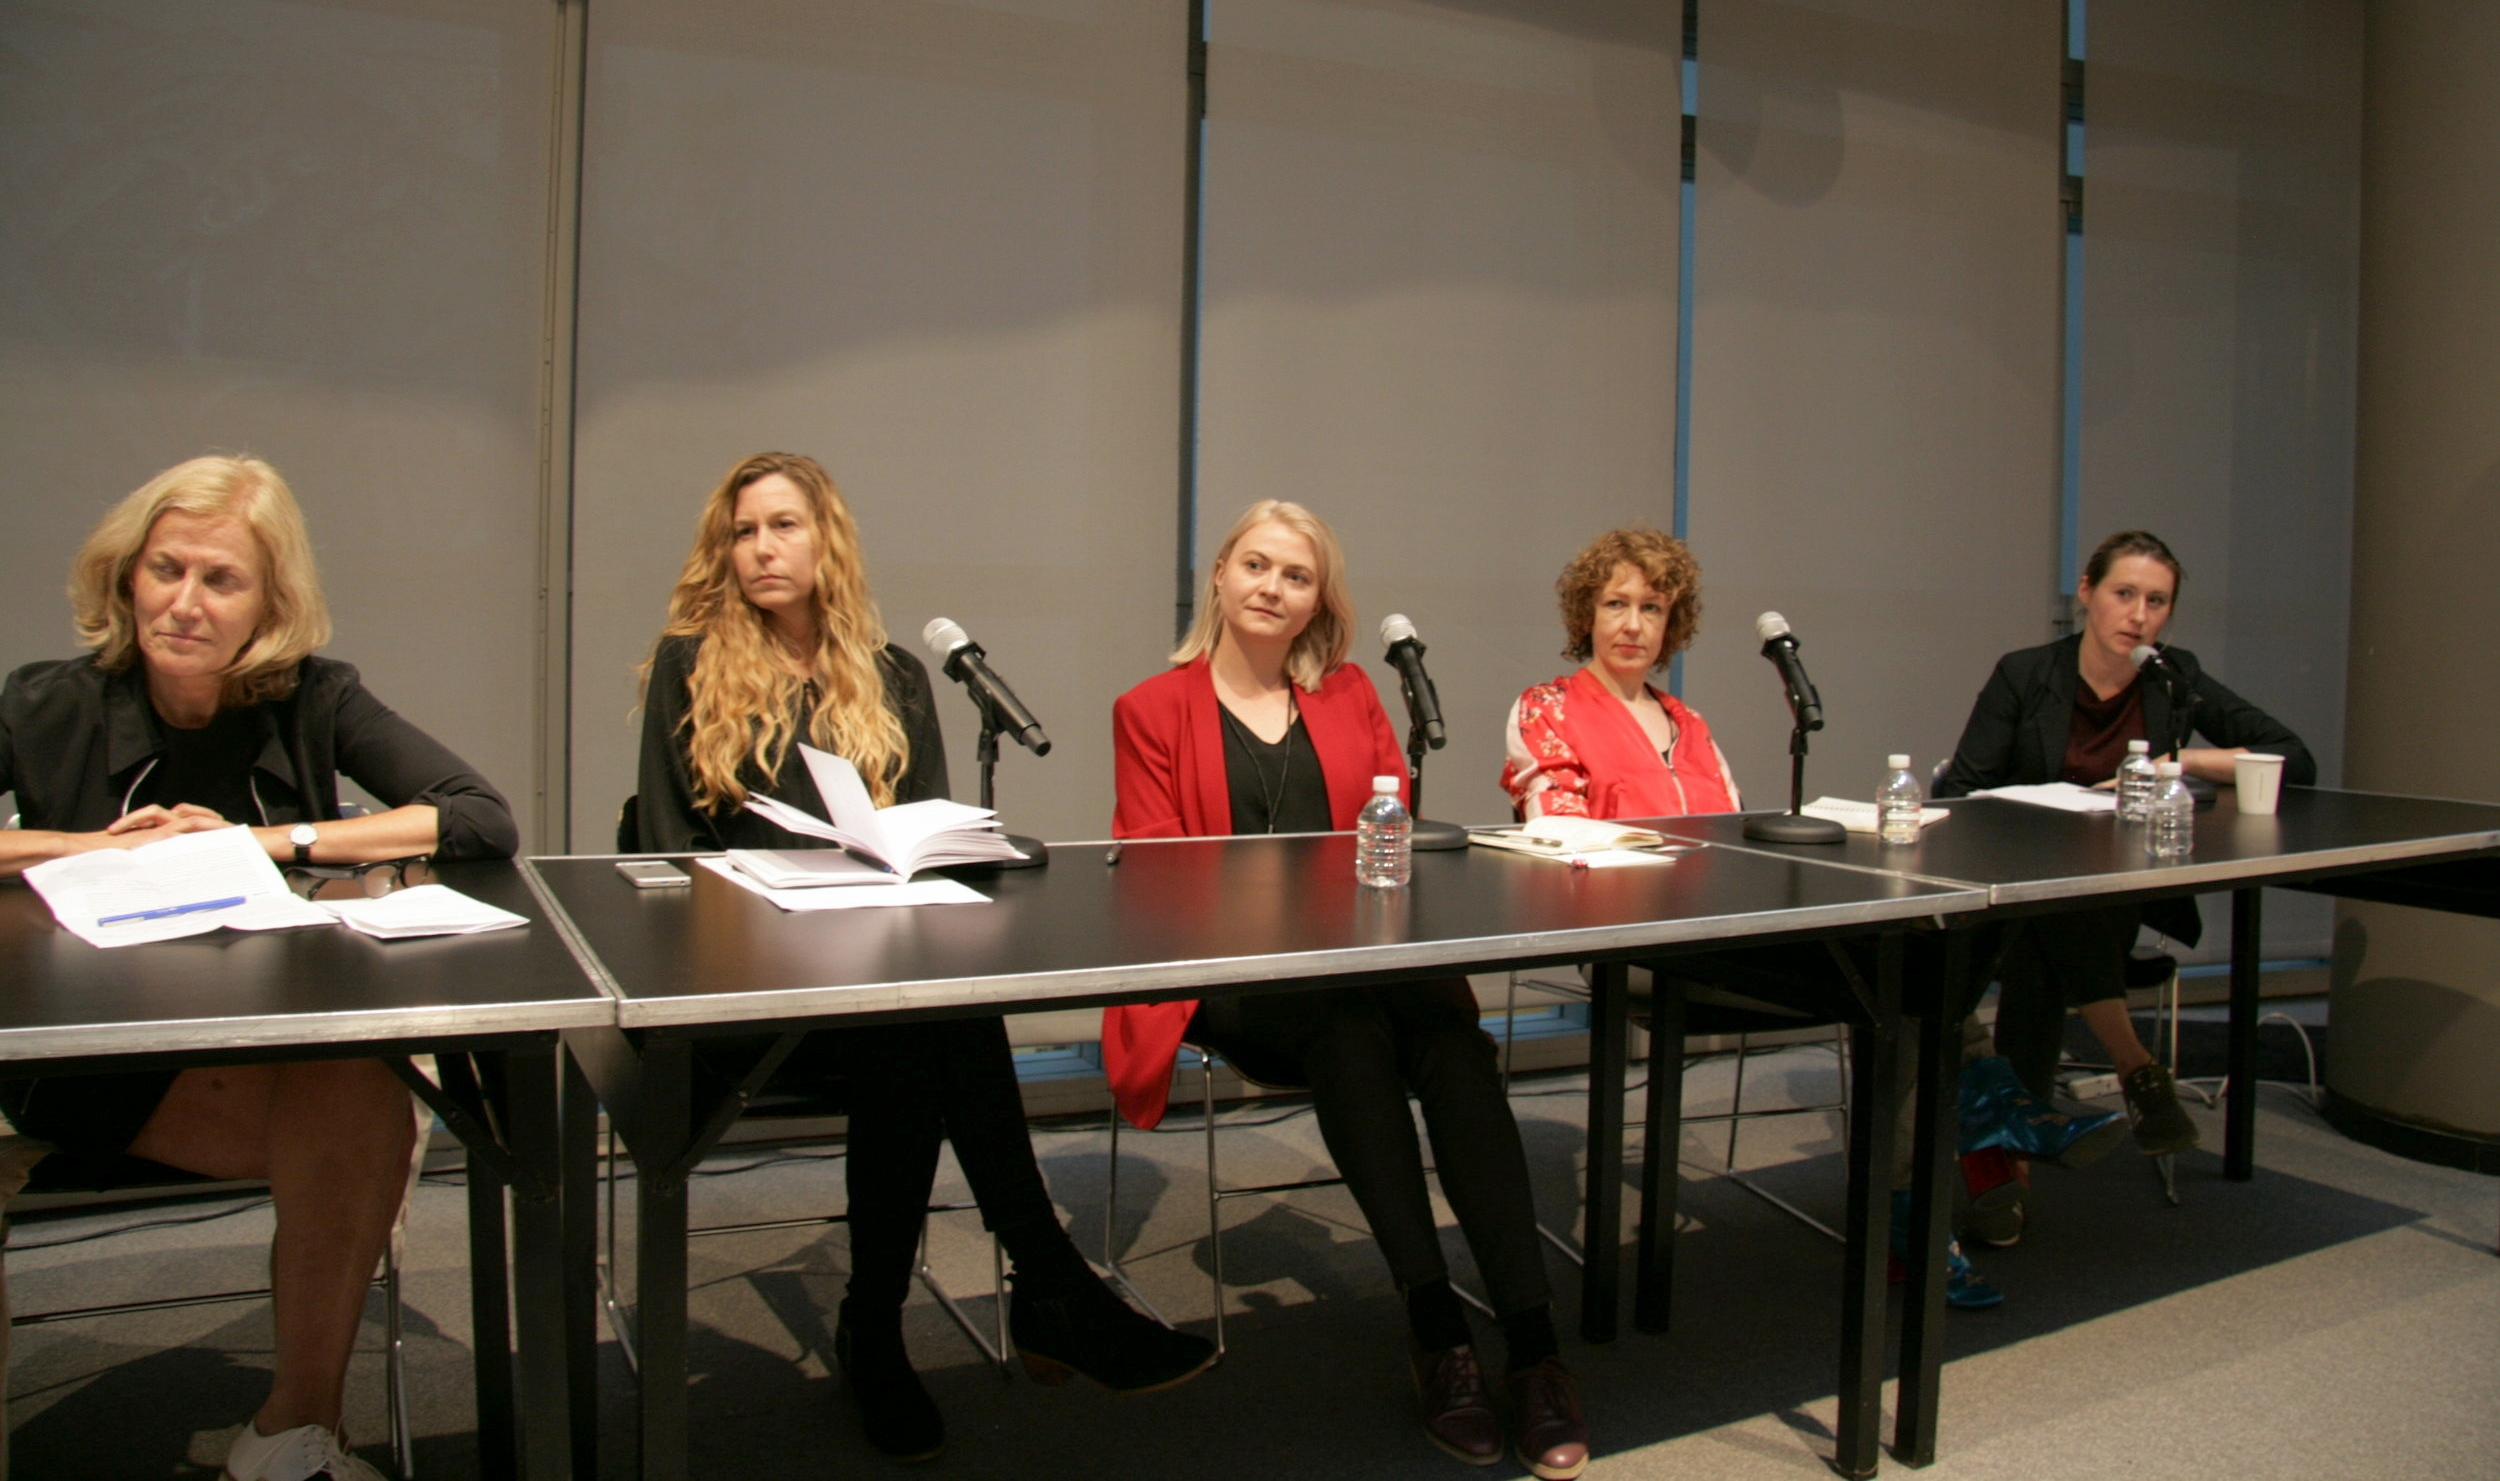 Closing panel discussion. From left: Romy Golan,Katherine Carl, Magdalena Moskalewicz, Claire Bishop, and Klara  Kemp-Welch.